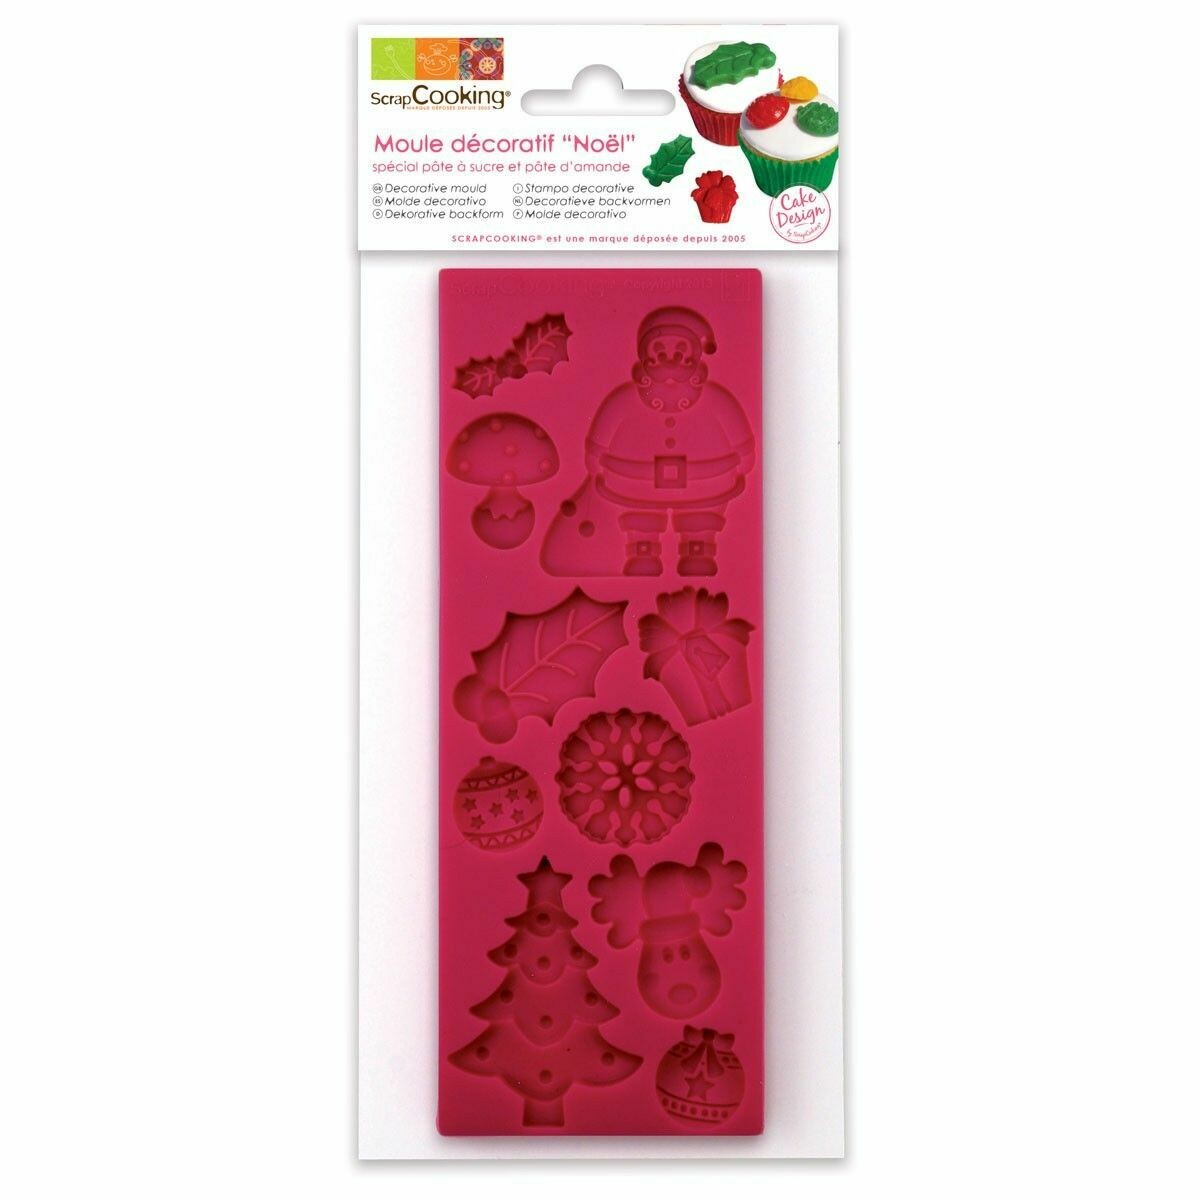 Scrapcooking Silicone Mould -CHRISTMAS THEME - Καλούπι Σιλικόνης Χριστουγεννιάτικα διακοσμητικά